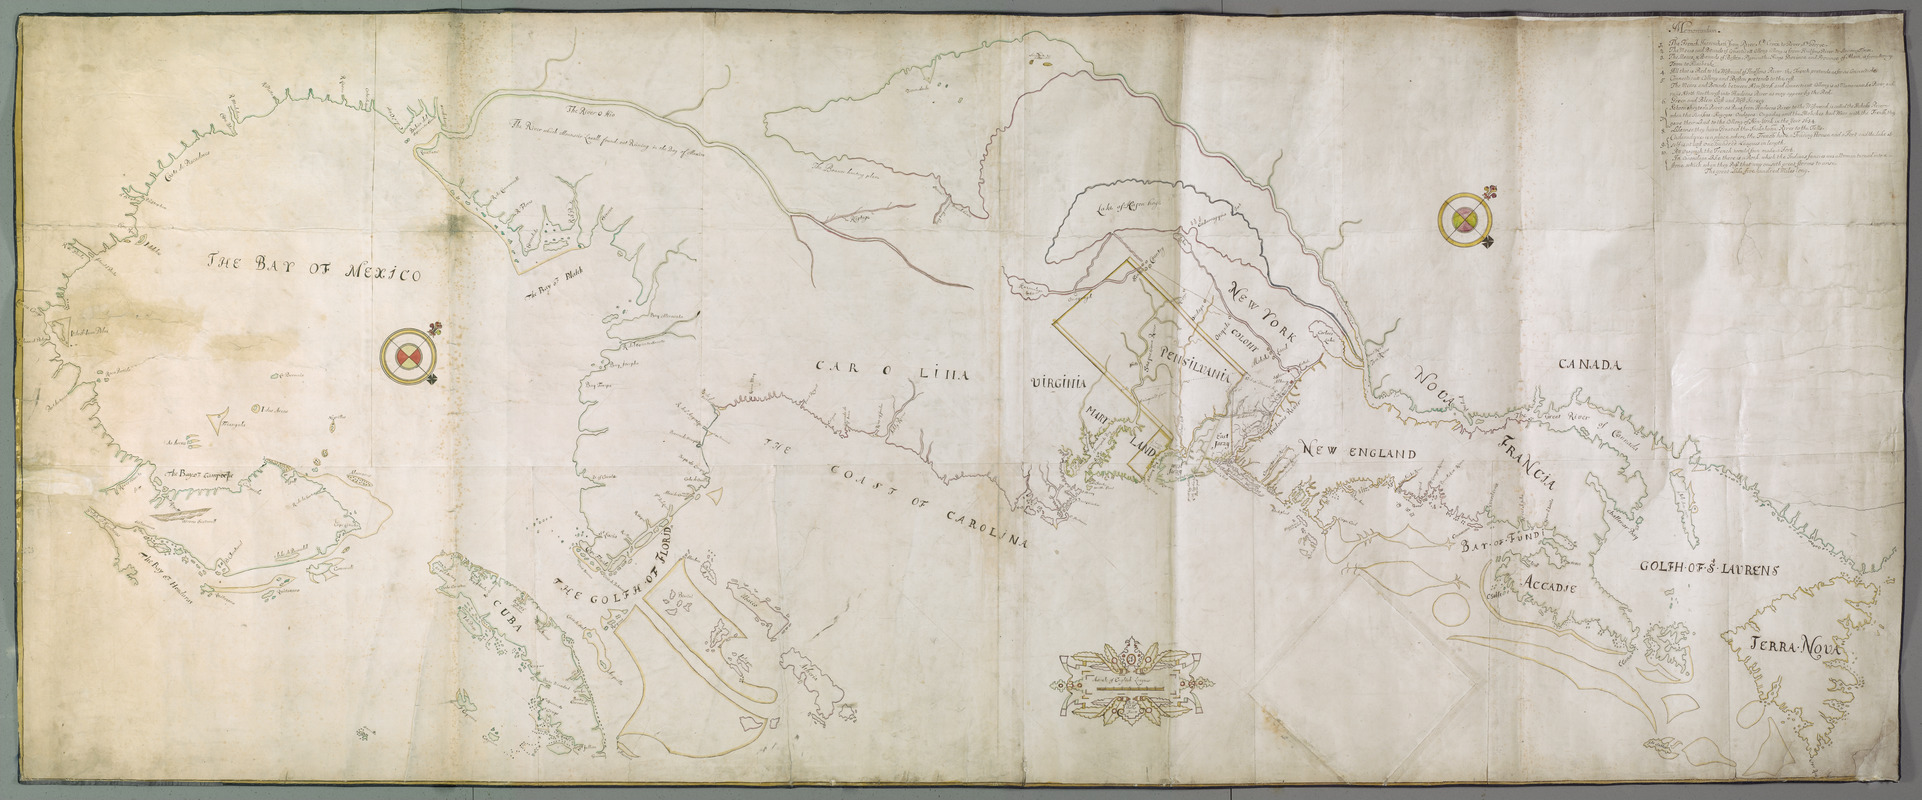 [A map of the east coast of America from Newfoundland to the Bay of Honduras]